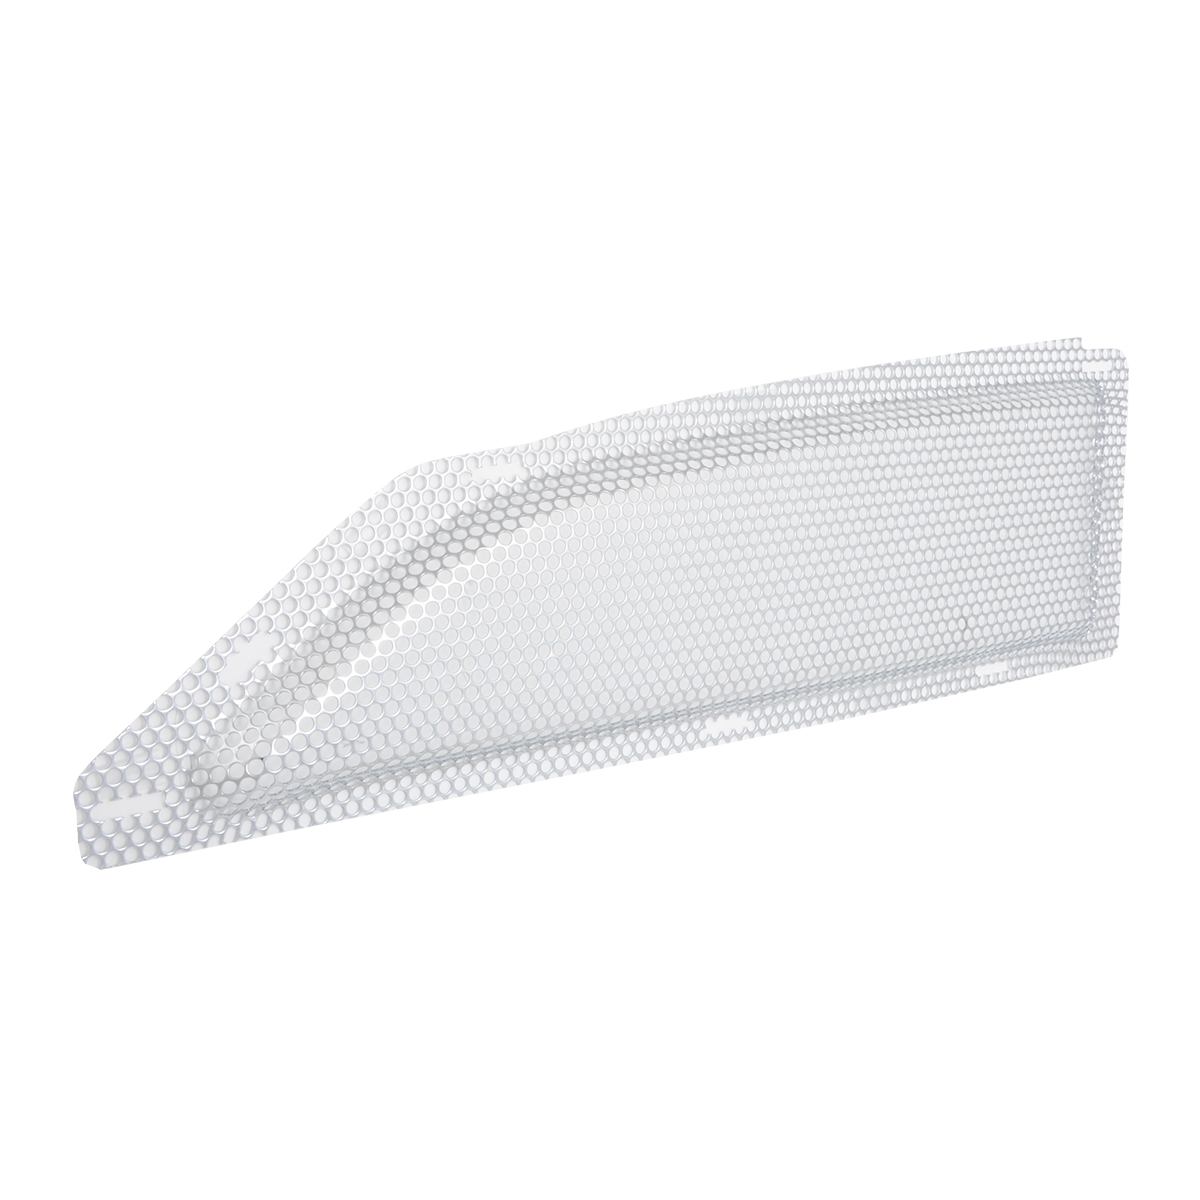 67897 Kenworth T680 Exterior Hood Intake Mesh Screen